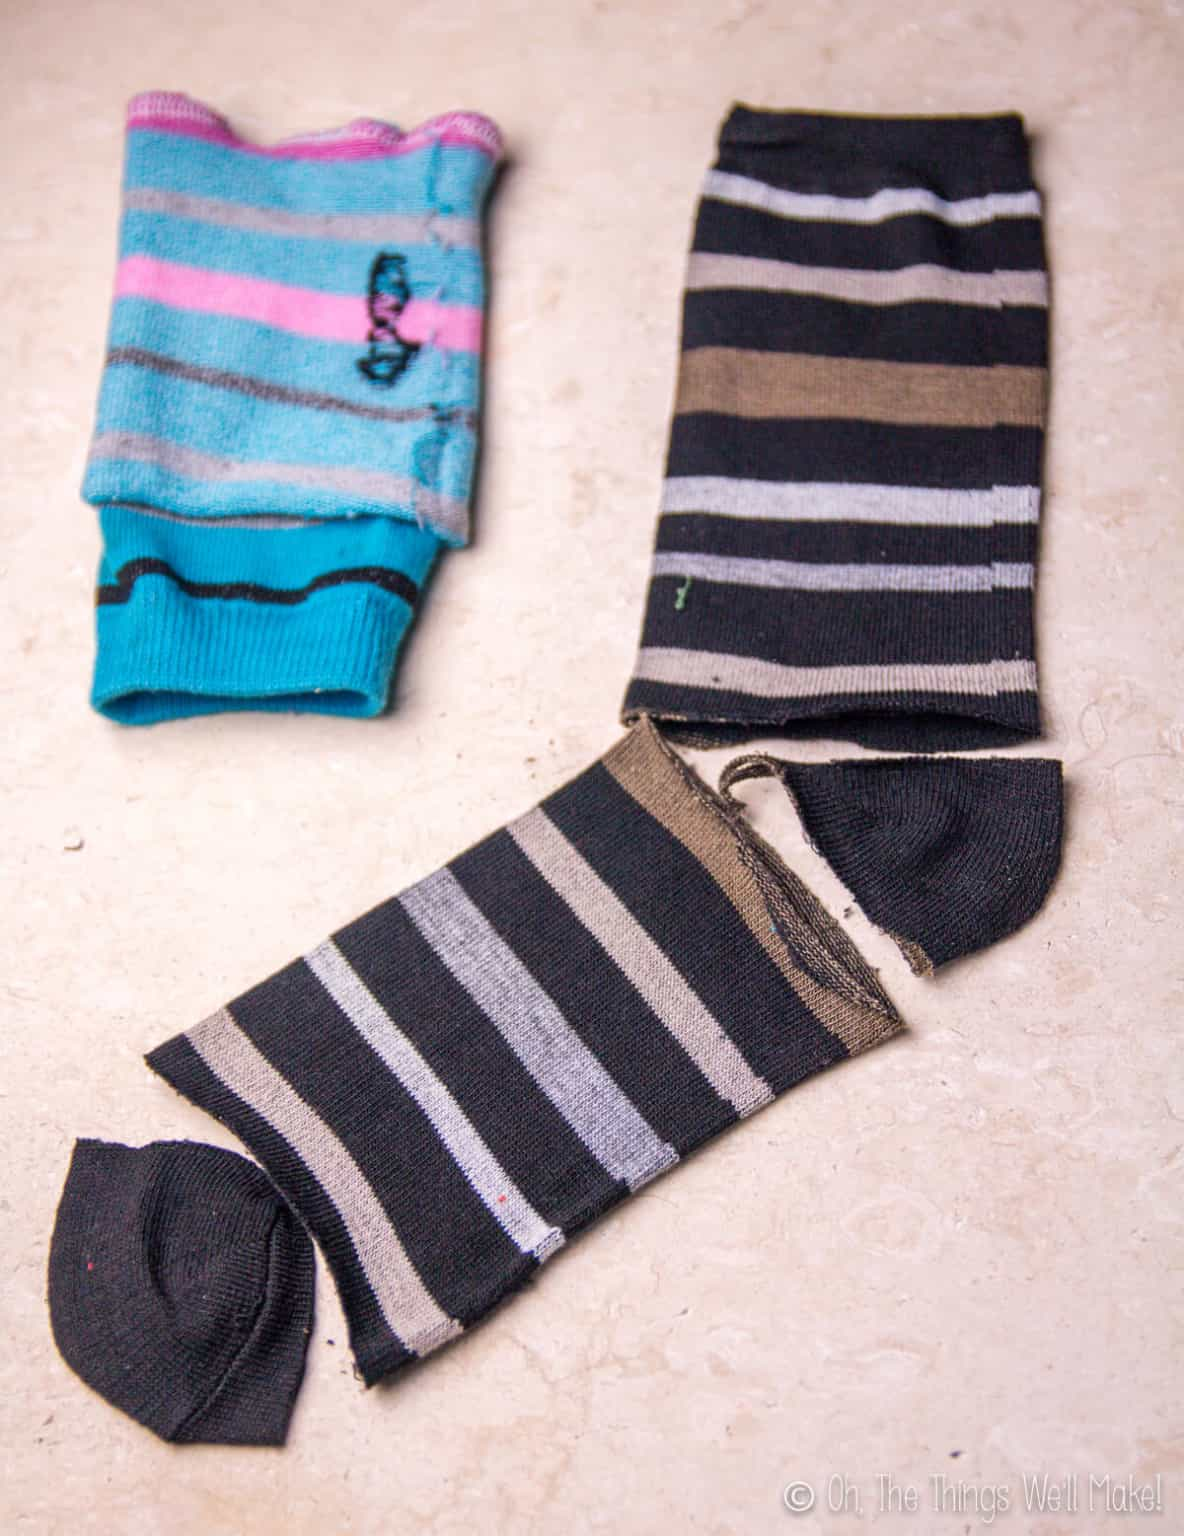 Top view of a black sock whose heel and toe areas have been cut out, and a blue sock that has been cut out and laid inside out.